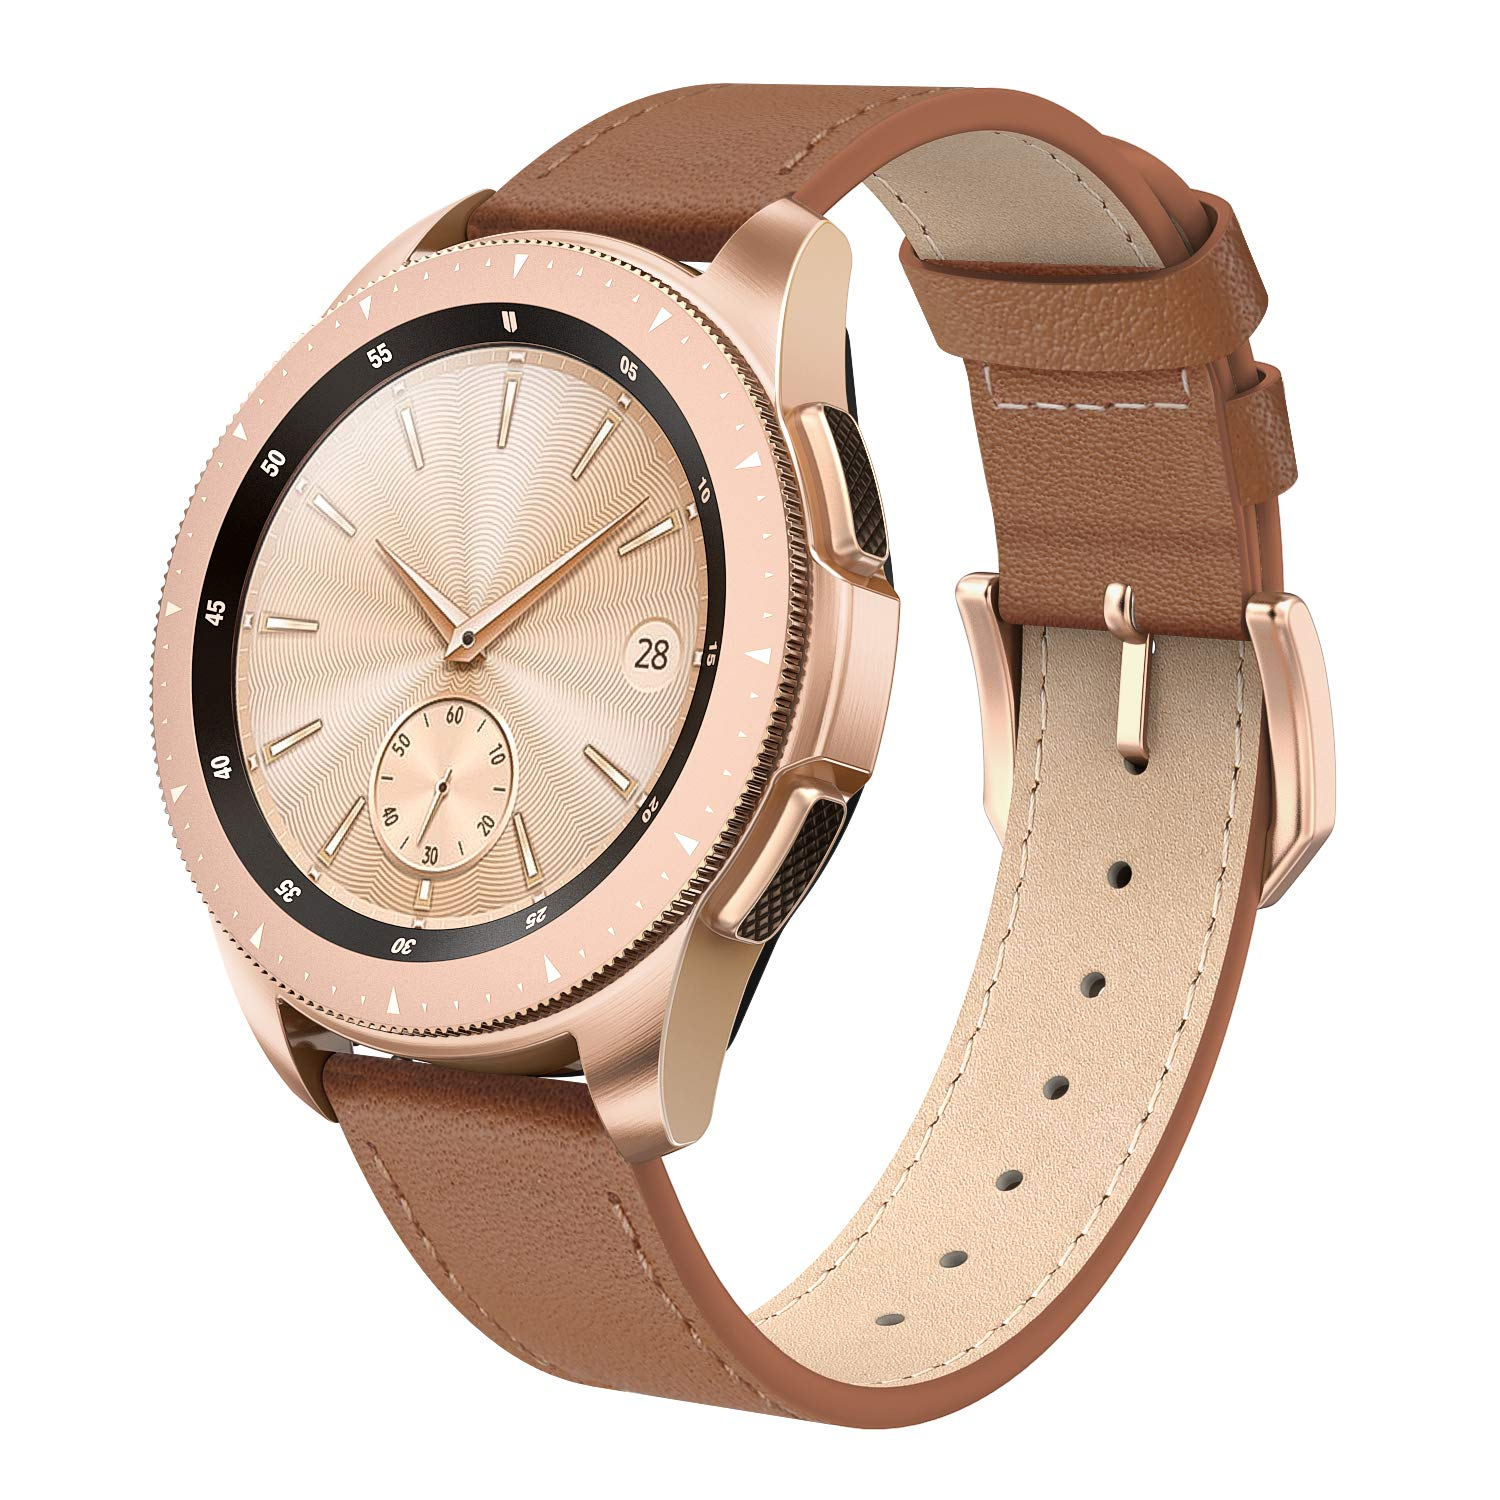 SWEES Leather Band Compatible for Galaxy Watch 42mm, 20mm Genuine Leather Bands Wristband Strap with Quick Release for Samsung Galaxy Smartwatch 42mm ...